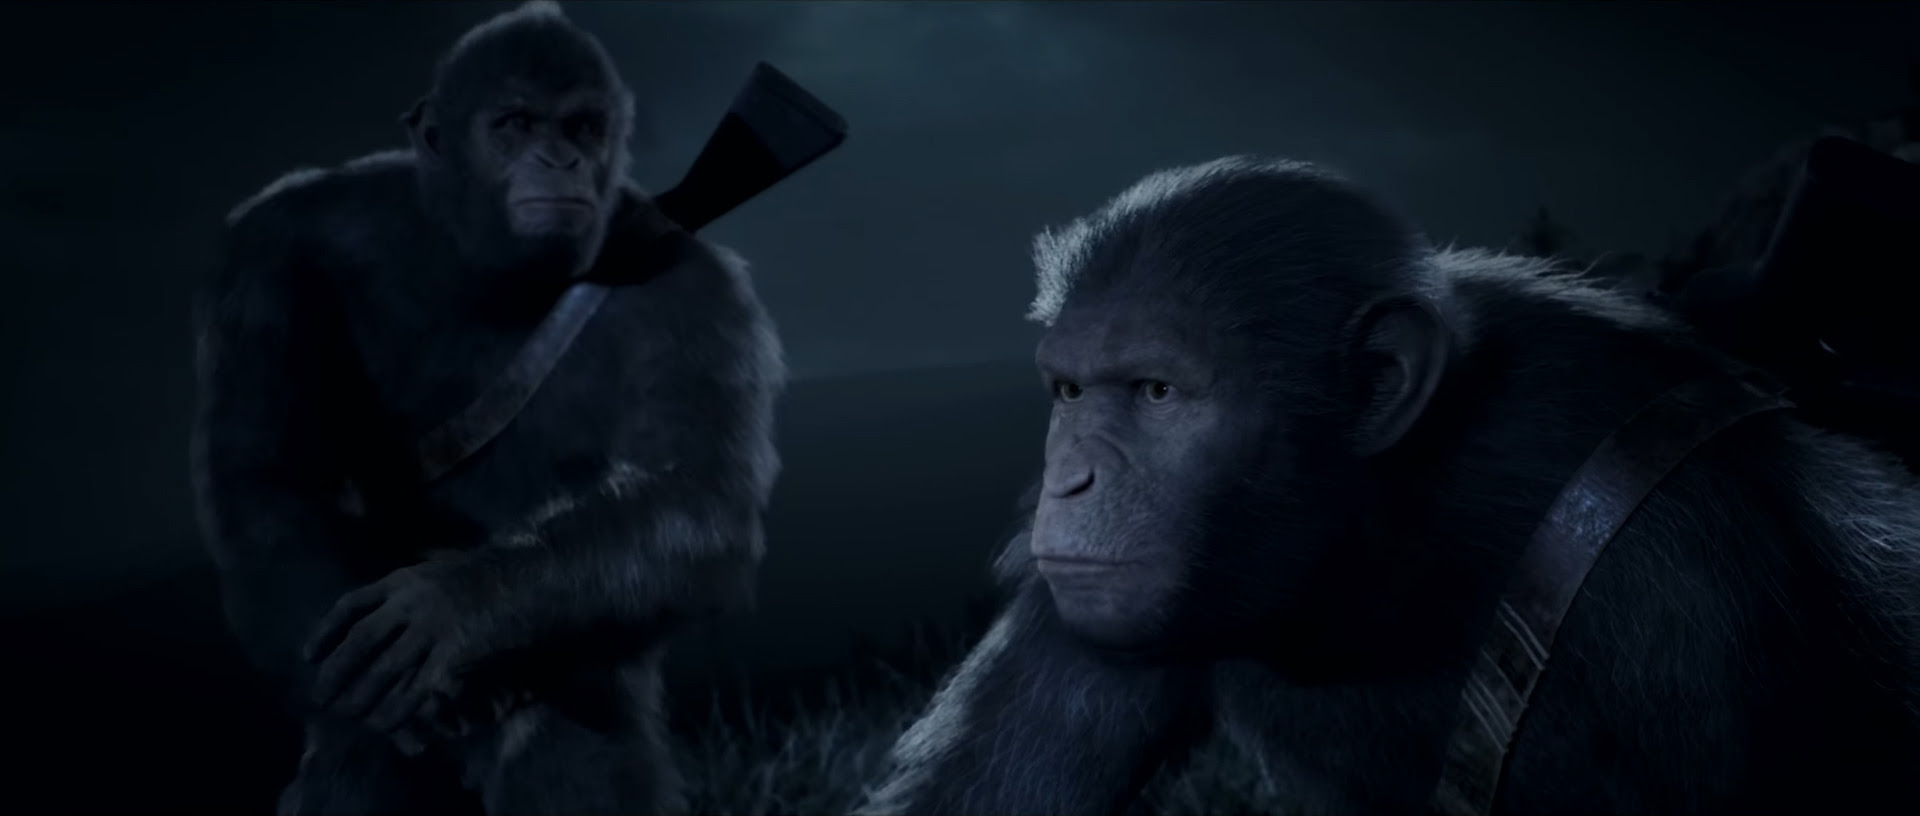 Planet of the Apes is getting a cinematic adventure game screenshot